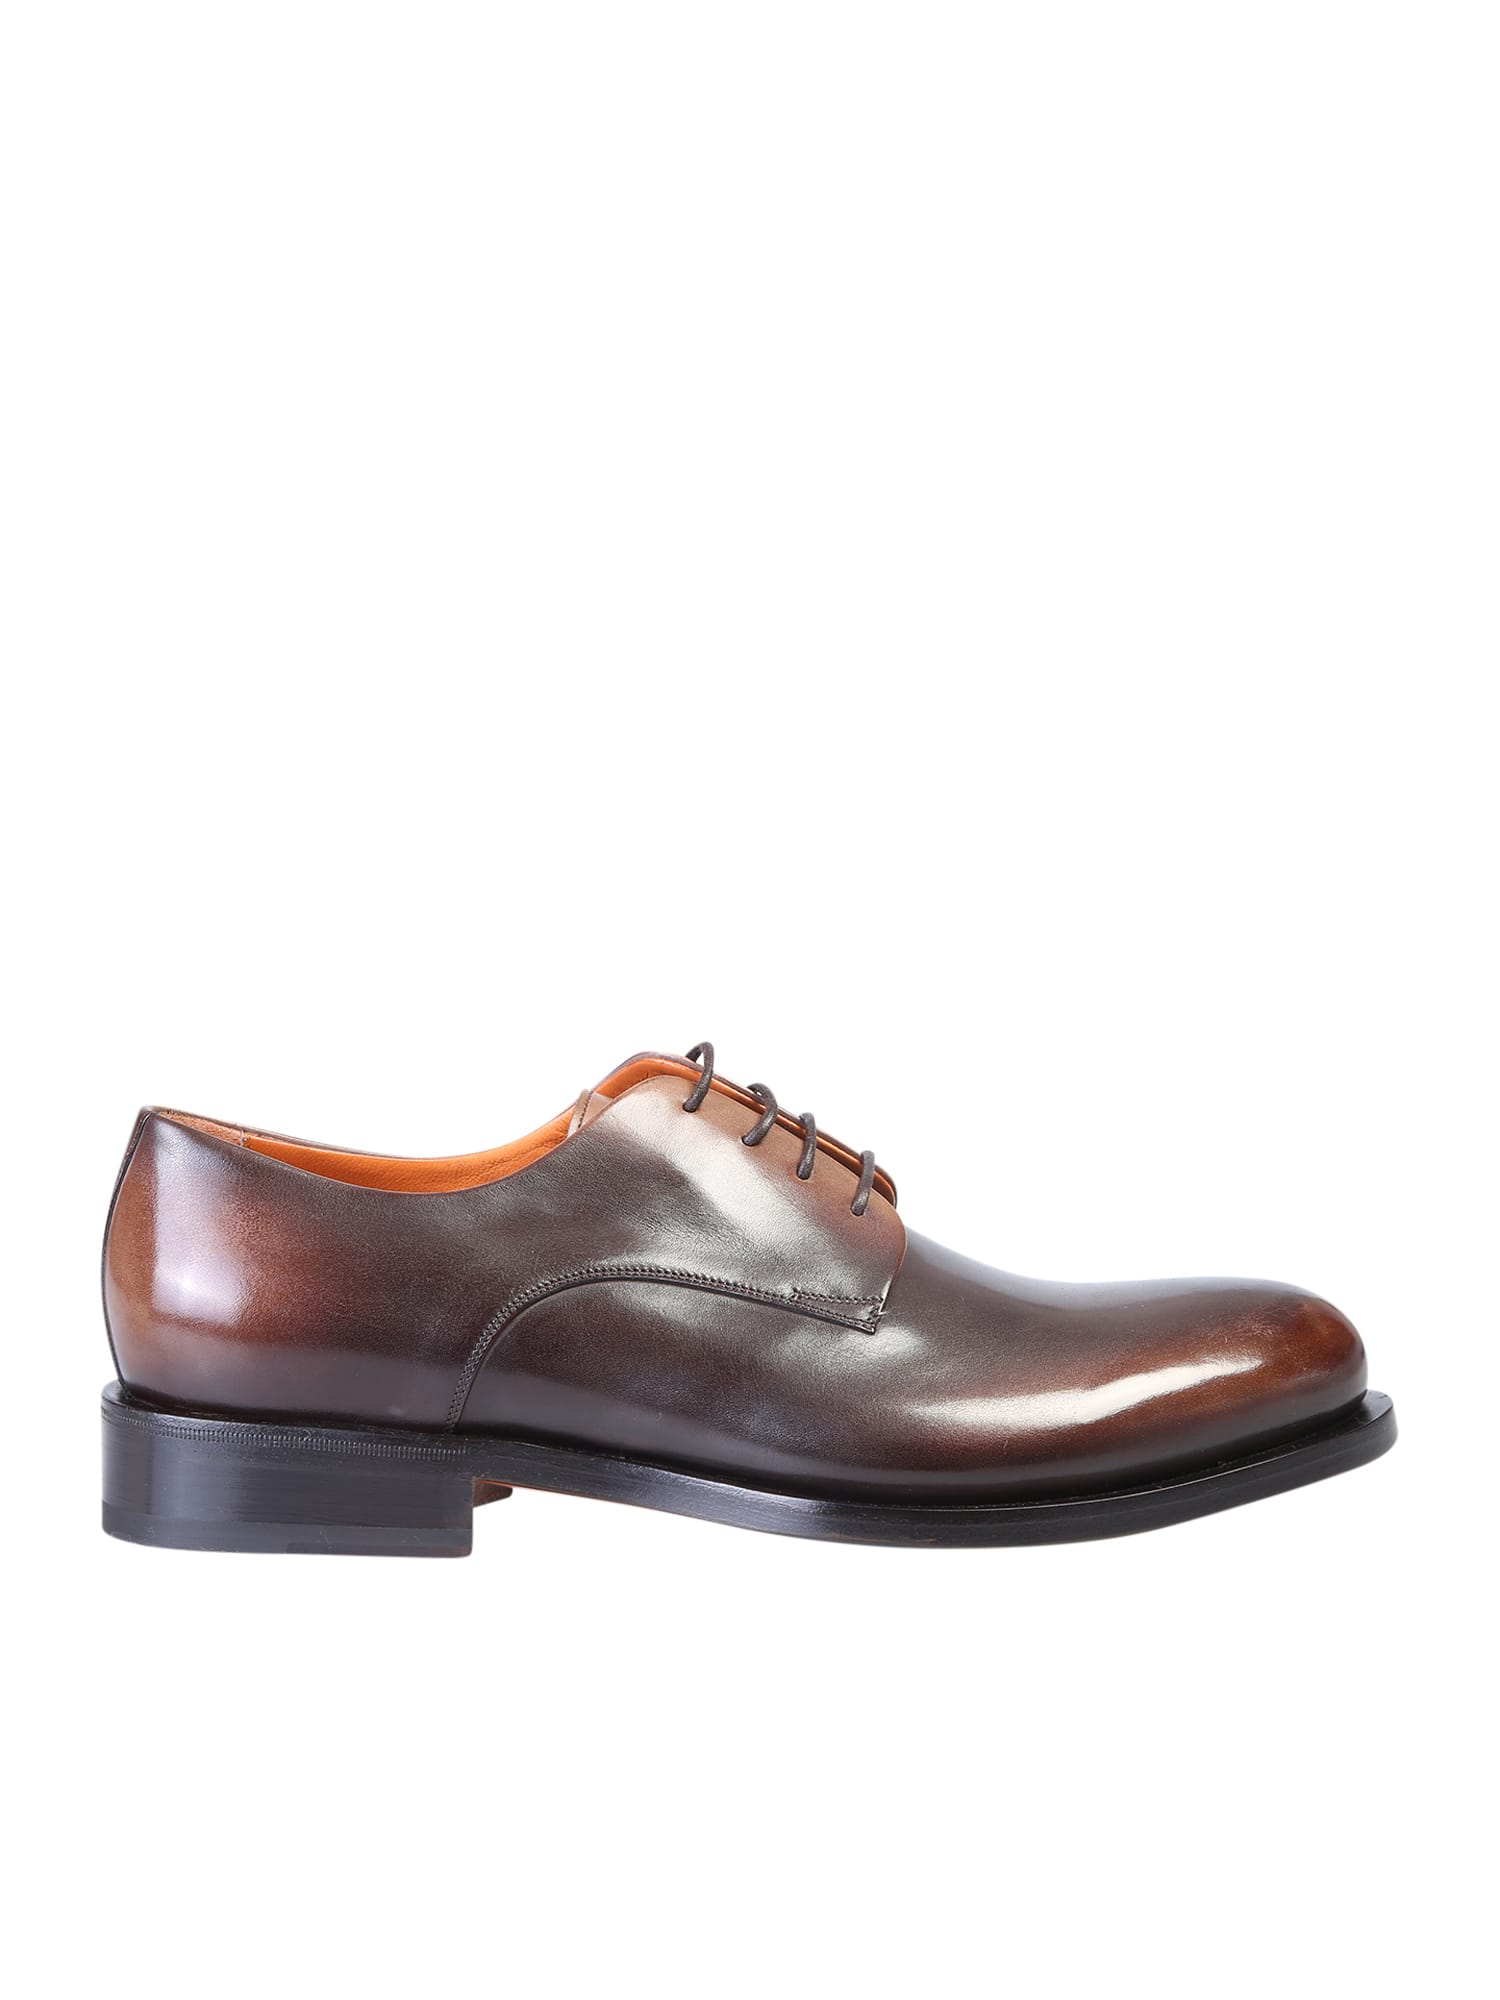 Santoni Shoes DERBY SHOES